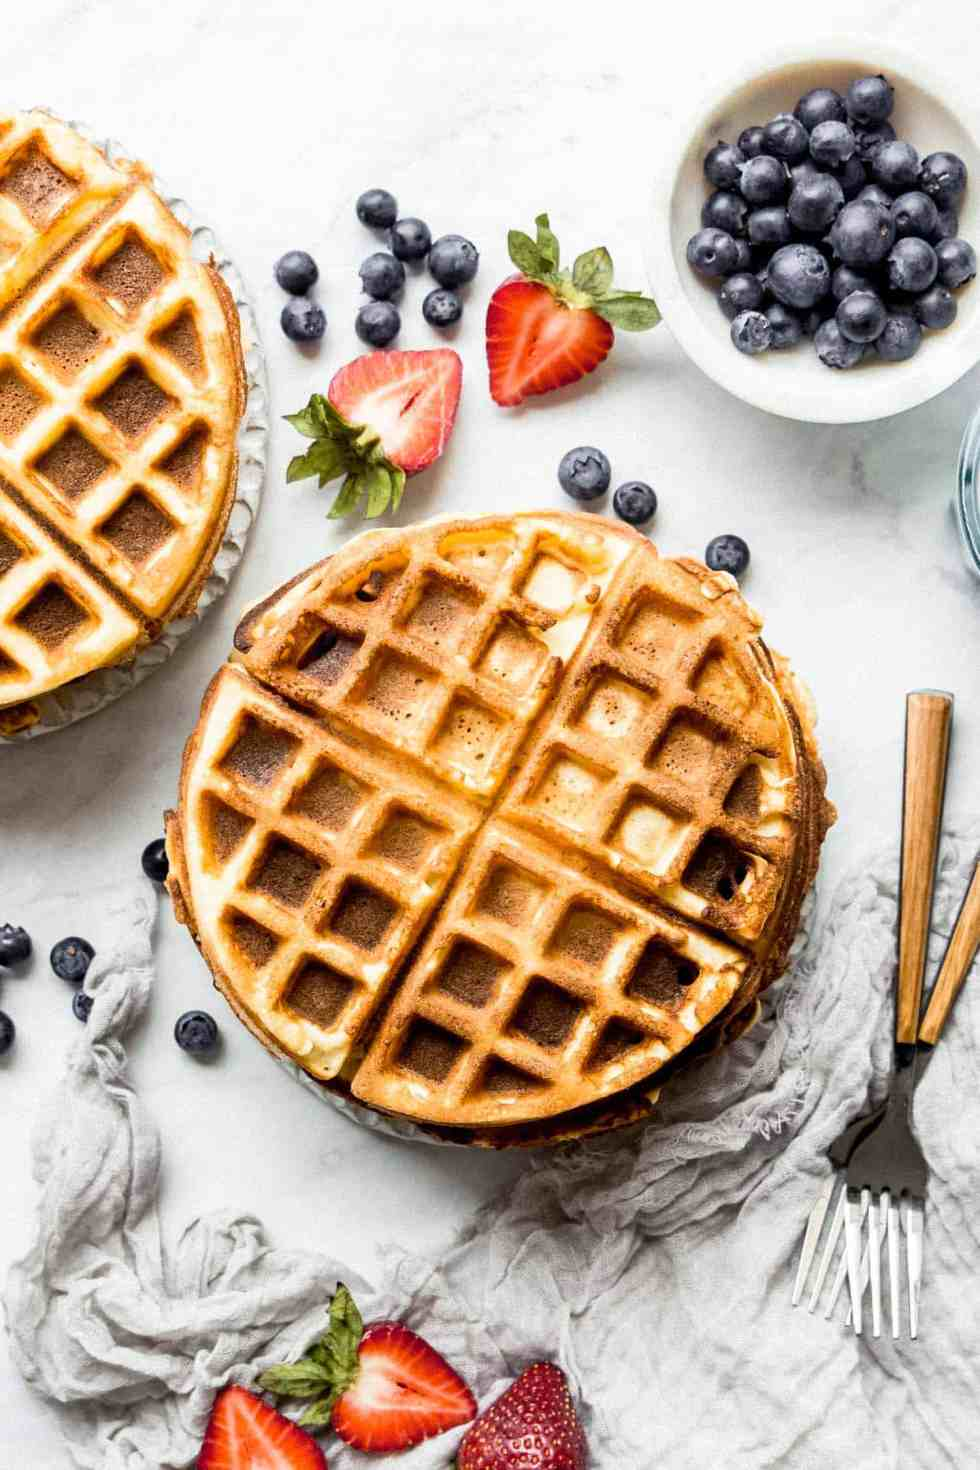 plain paleo waffles on a plate with blueberries on the side